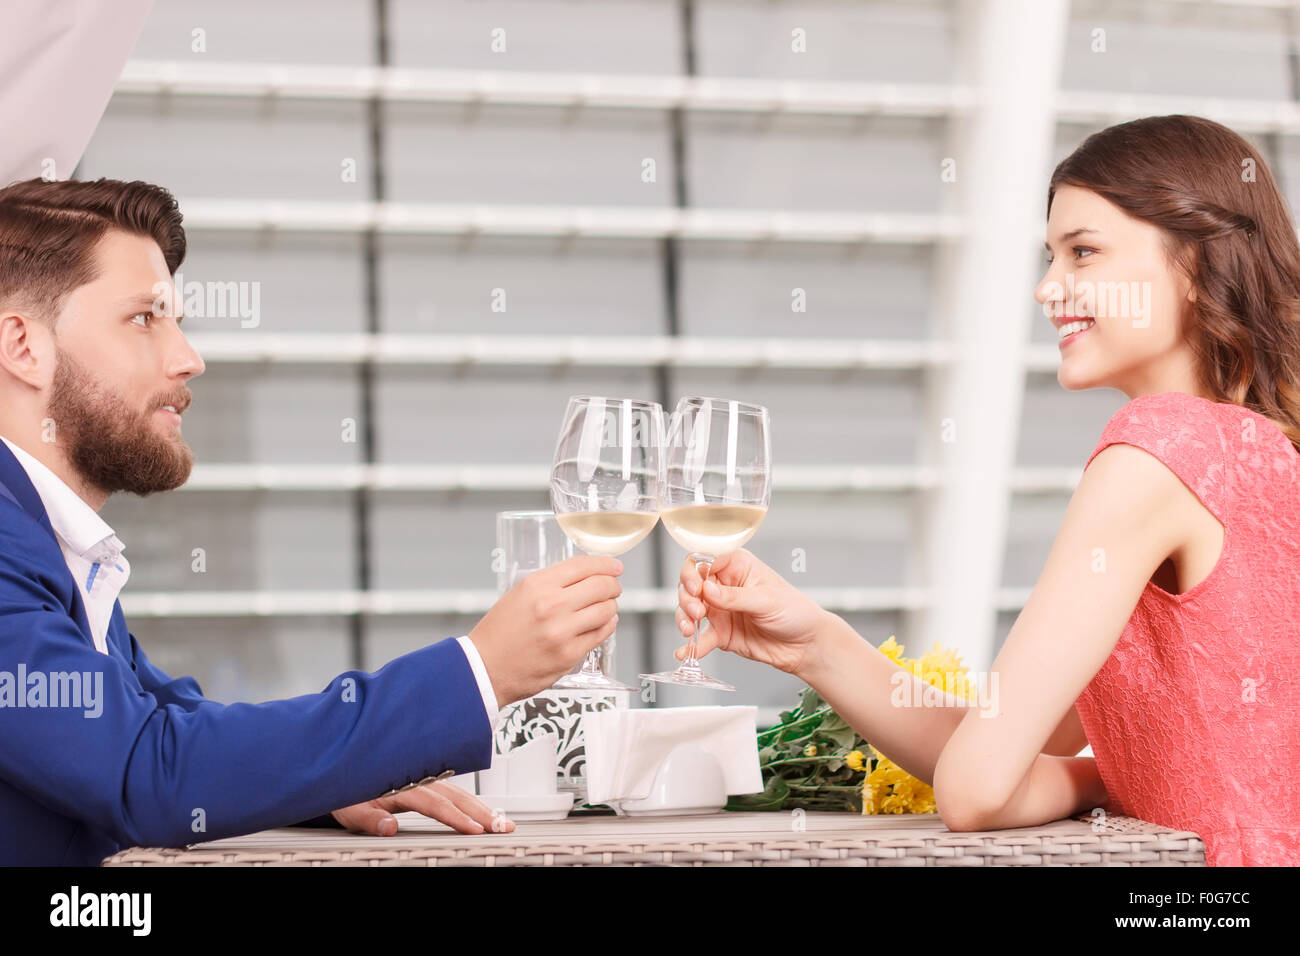 Young man and woman clinking glasses in cafe - Stock Image